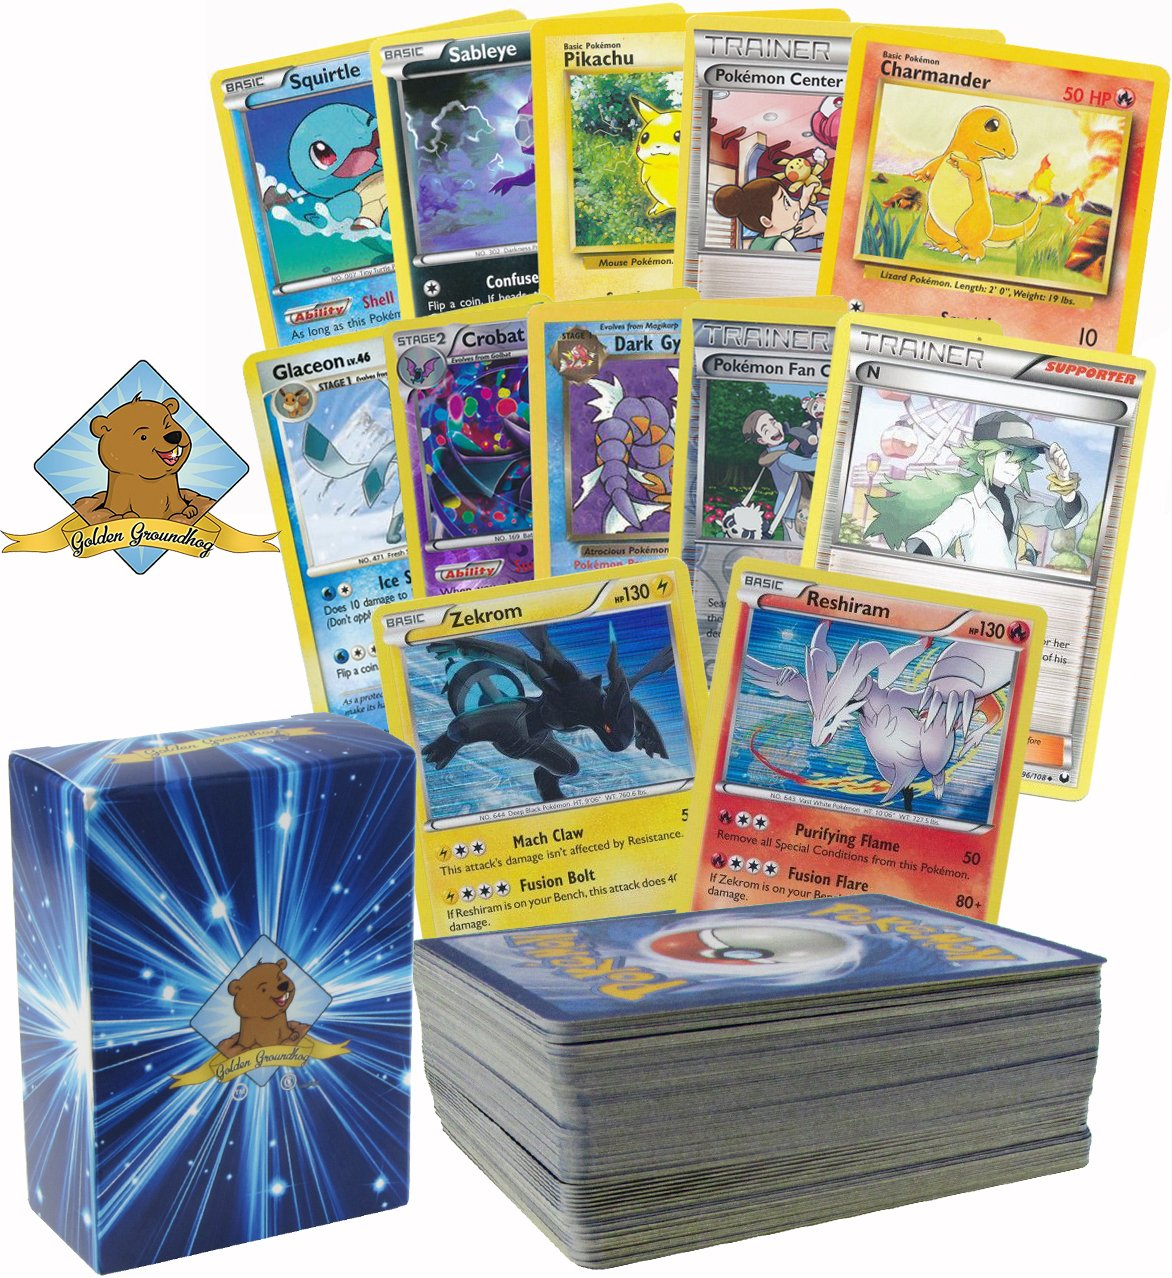 Pokemon 100 card lot Featuring N and 1 Legendary Pokemon Zekrom or Reshiram! Includes Rares and Foils! Includes Golden Groundhog Box!